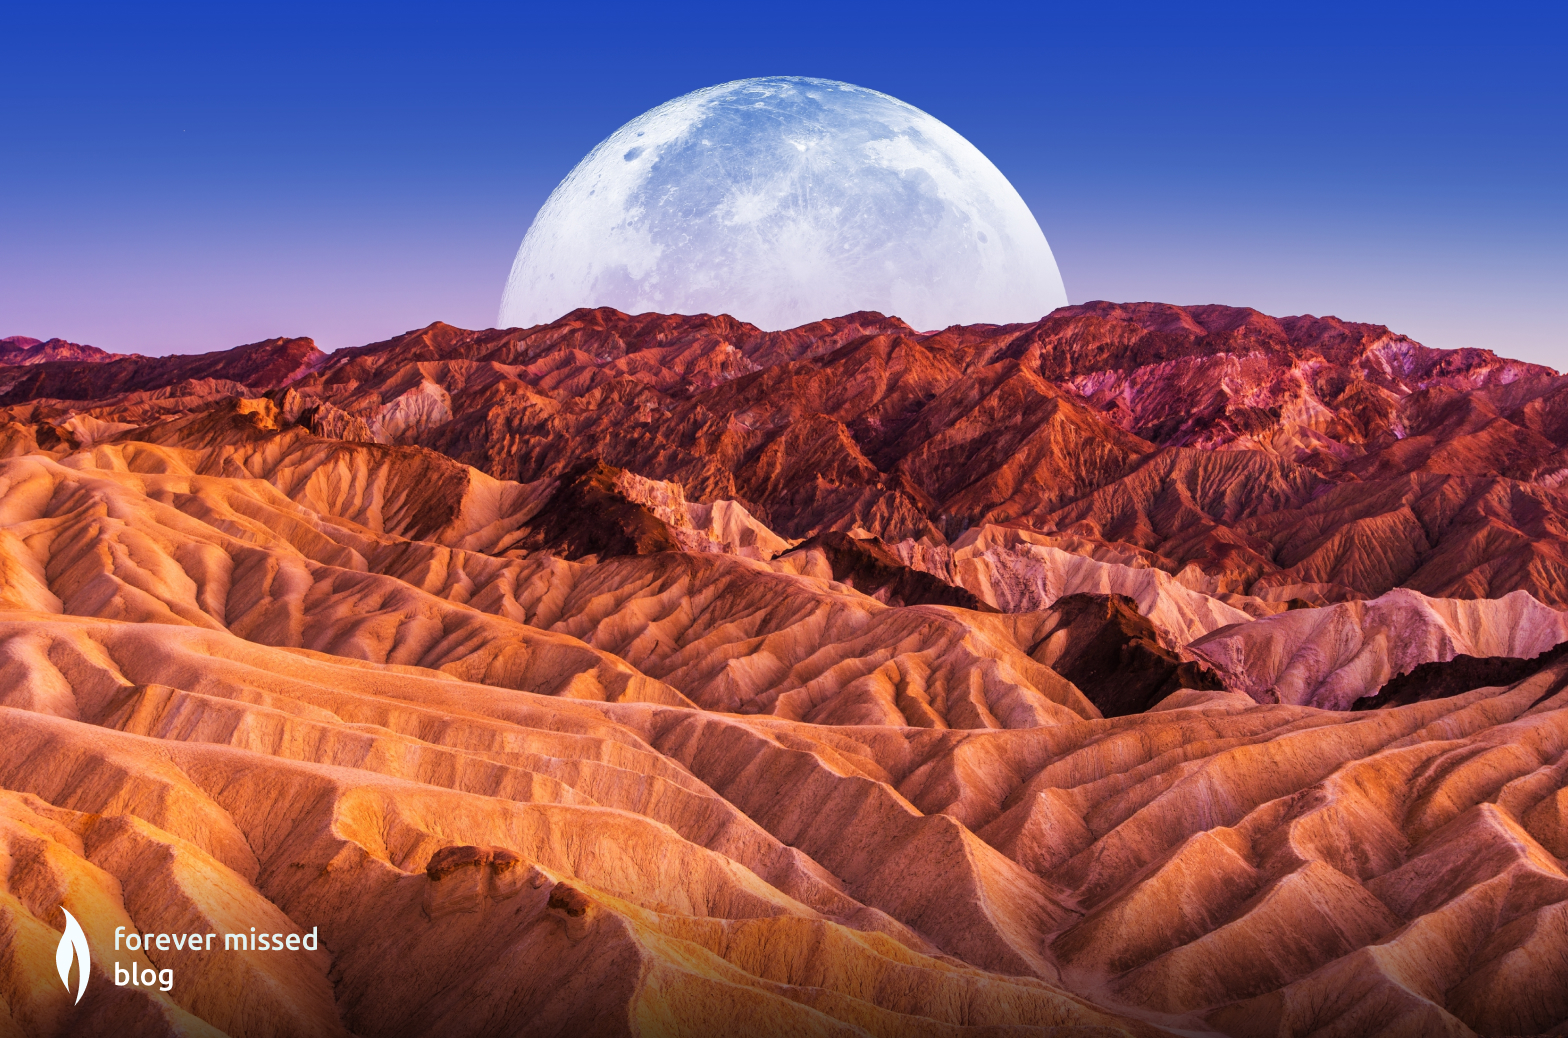 Death Valley: What its Name Says About the Living